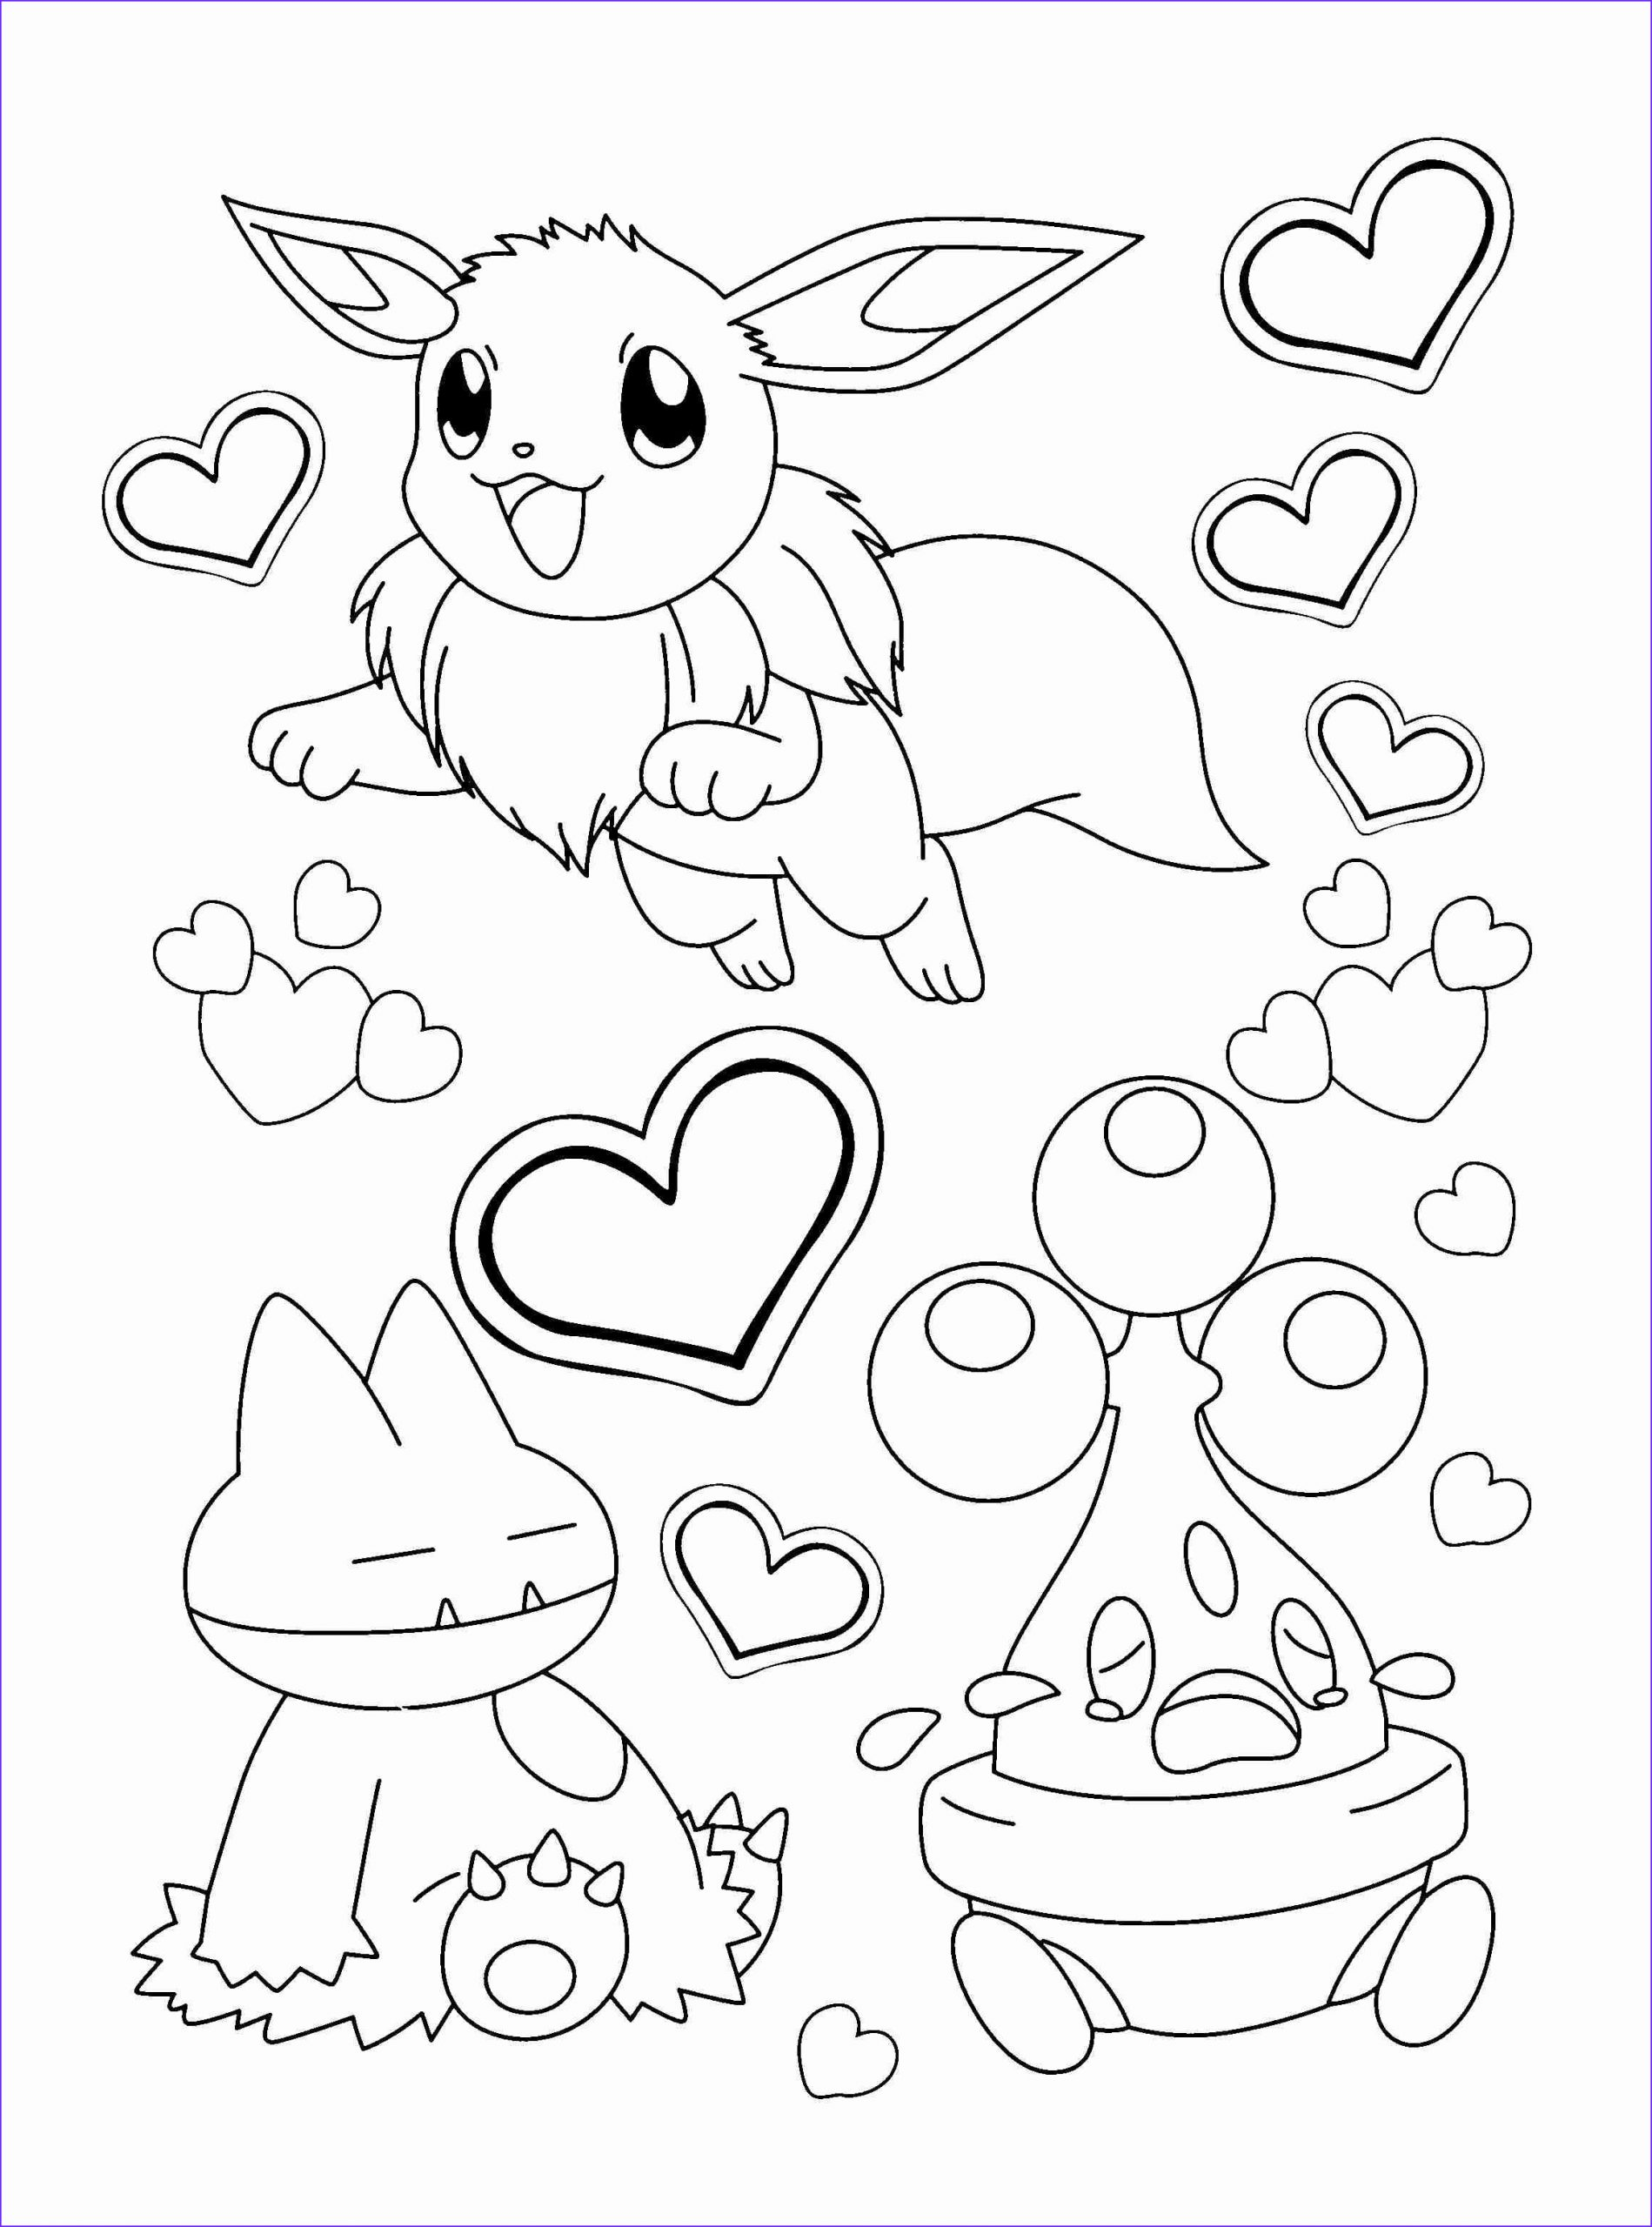 Eevee Evolutions Coloring Page Inspirational Gallery High Quality Coloring Pages at Getcolorings